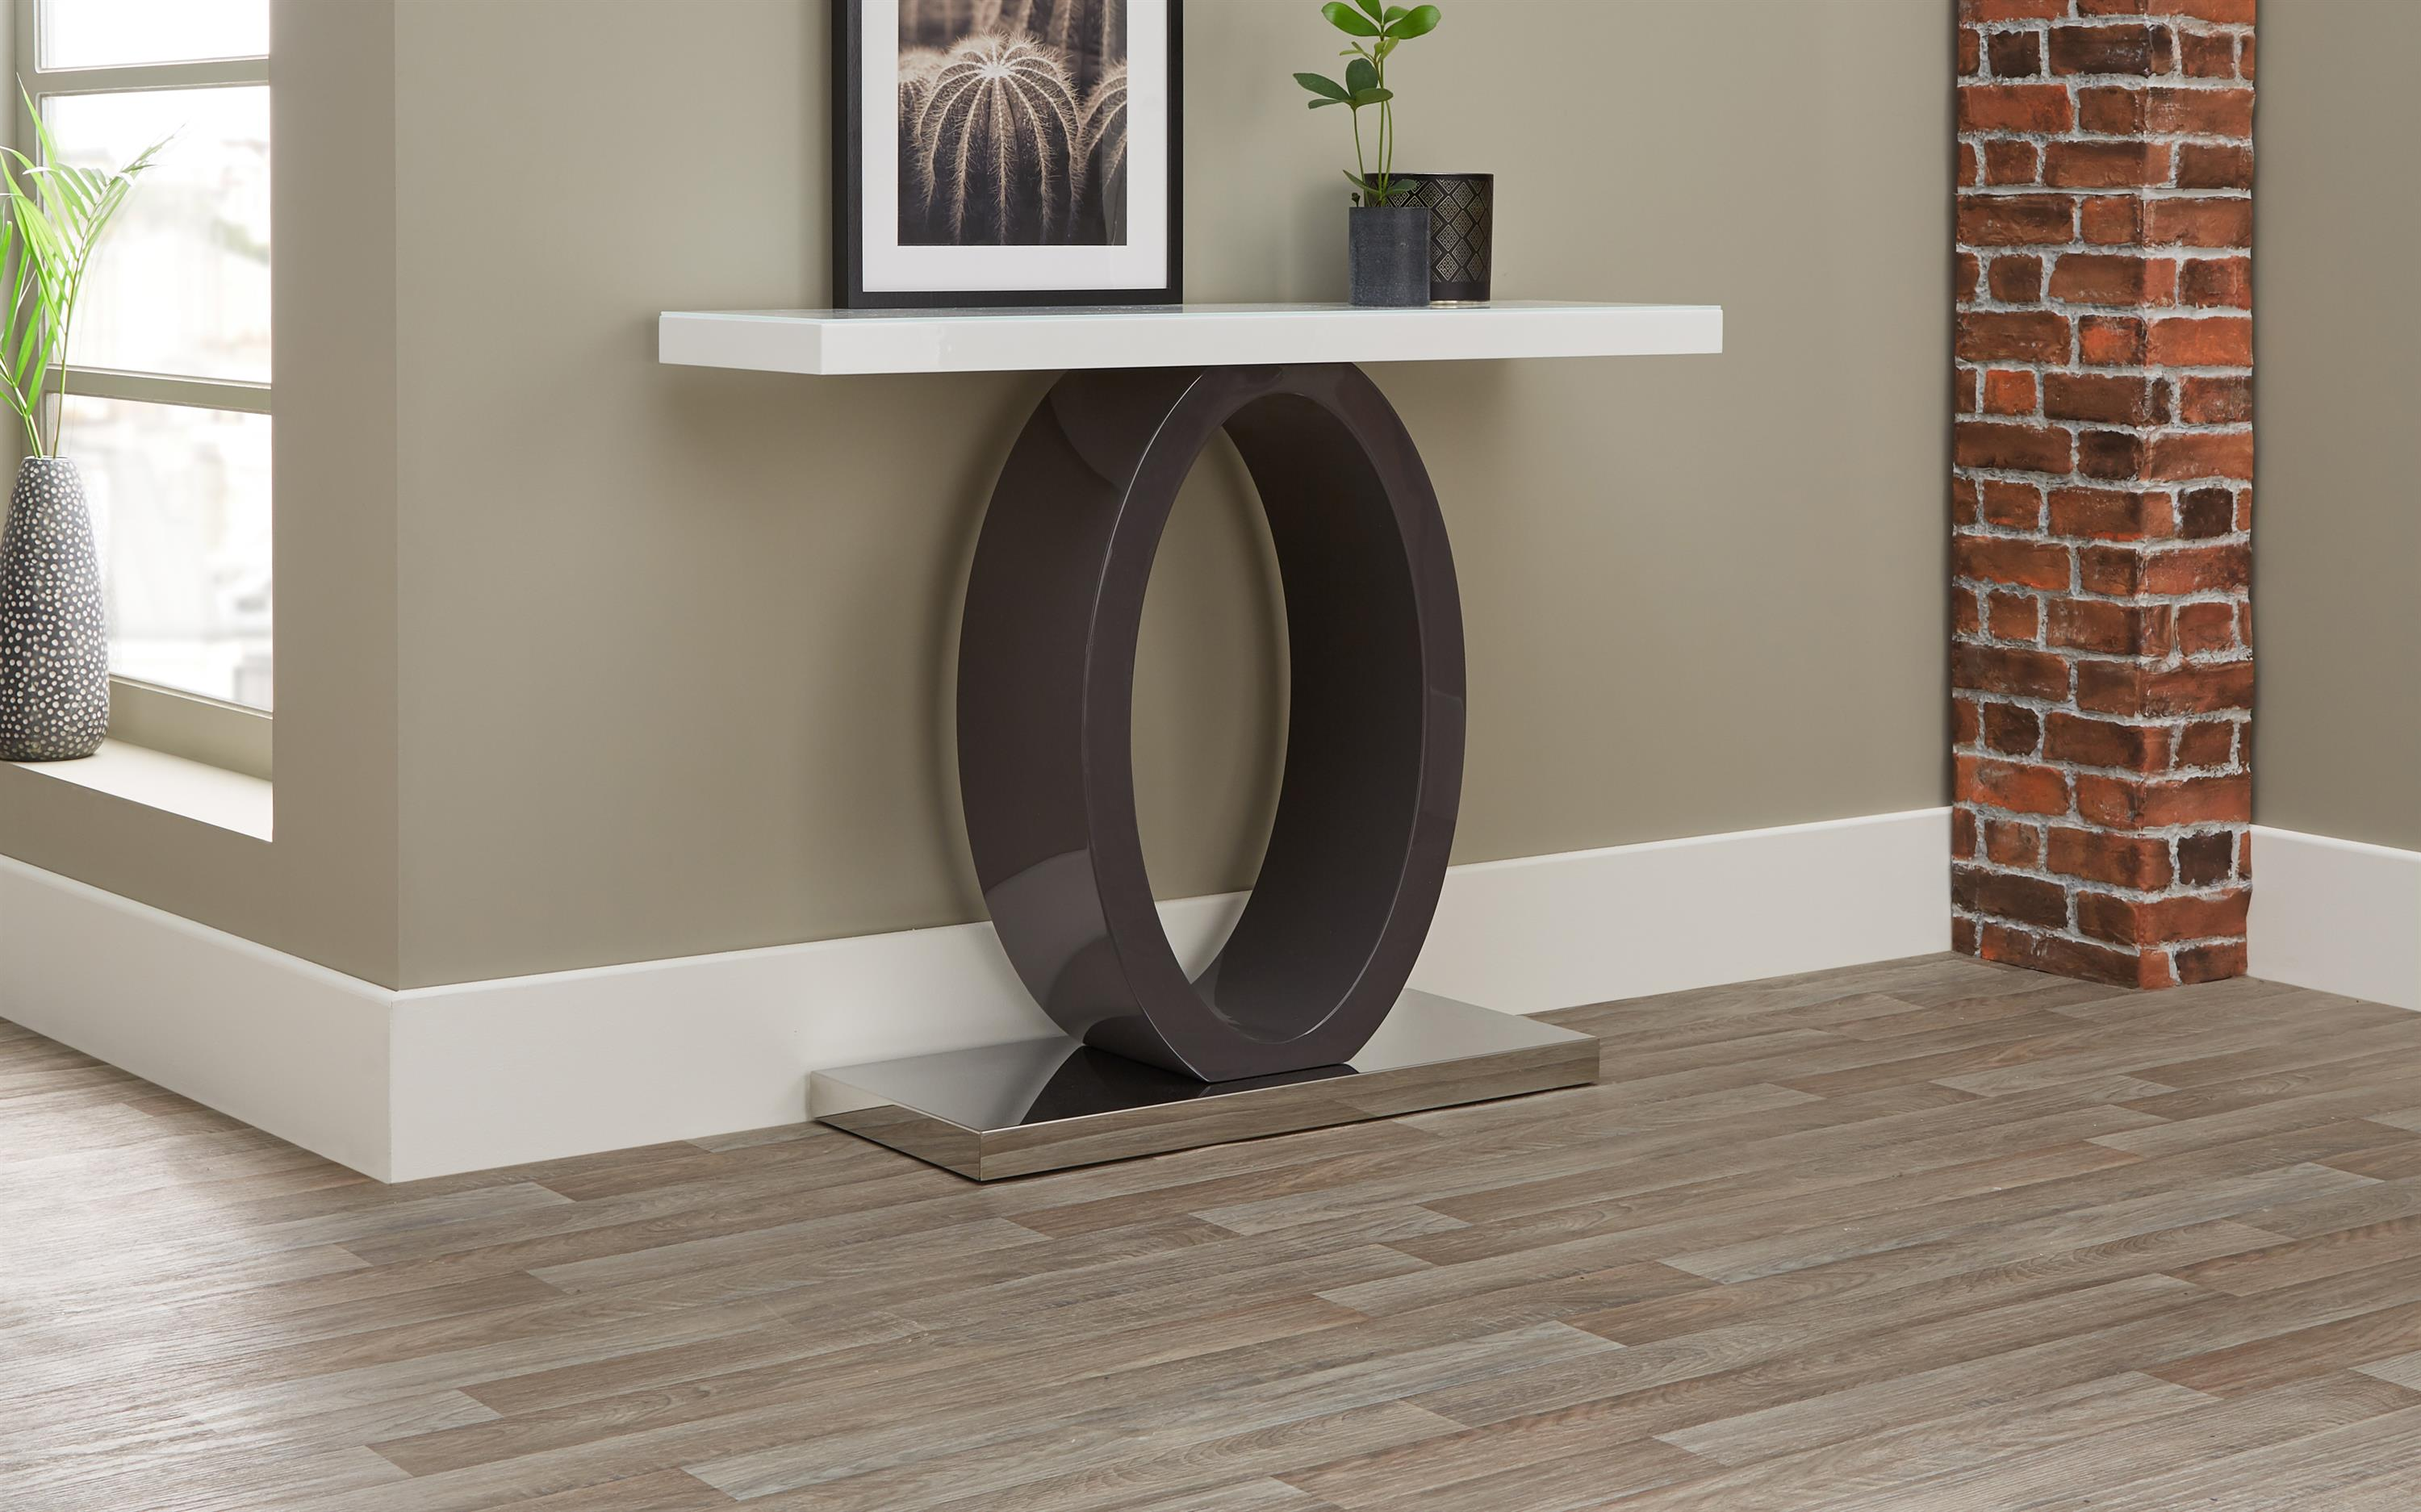 Tokyo White & Grey Console Table